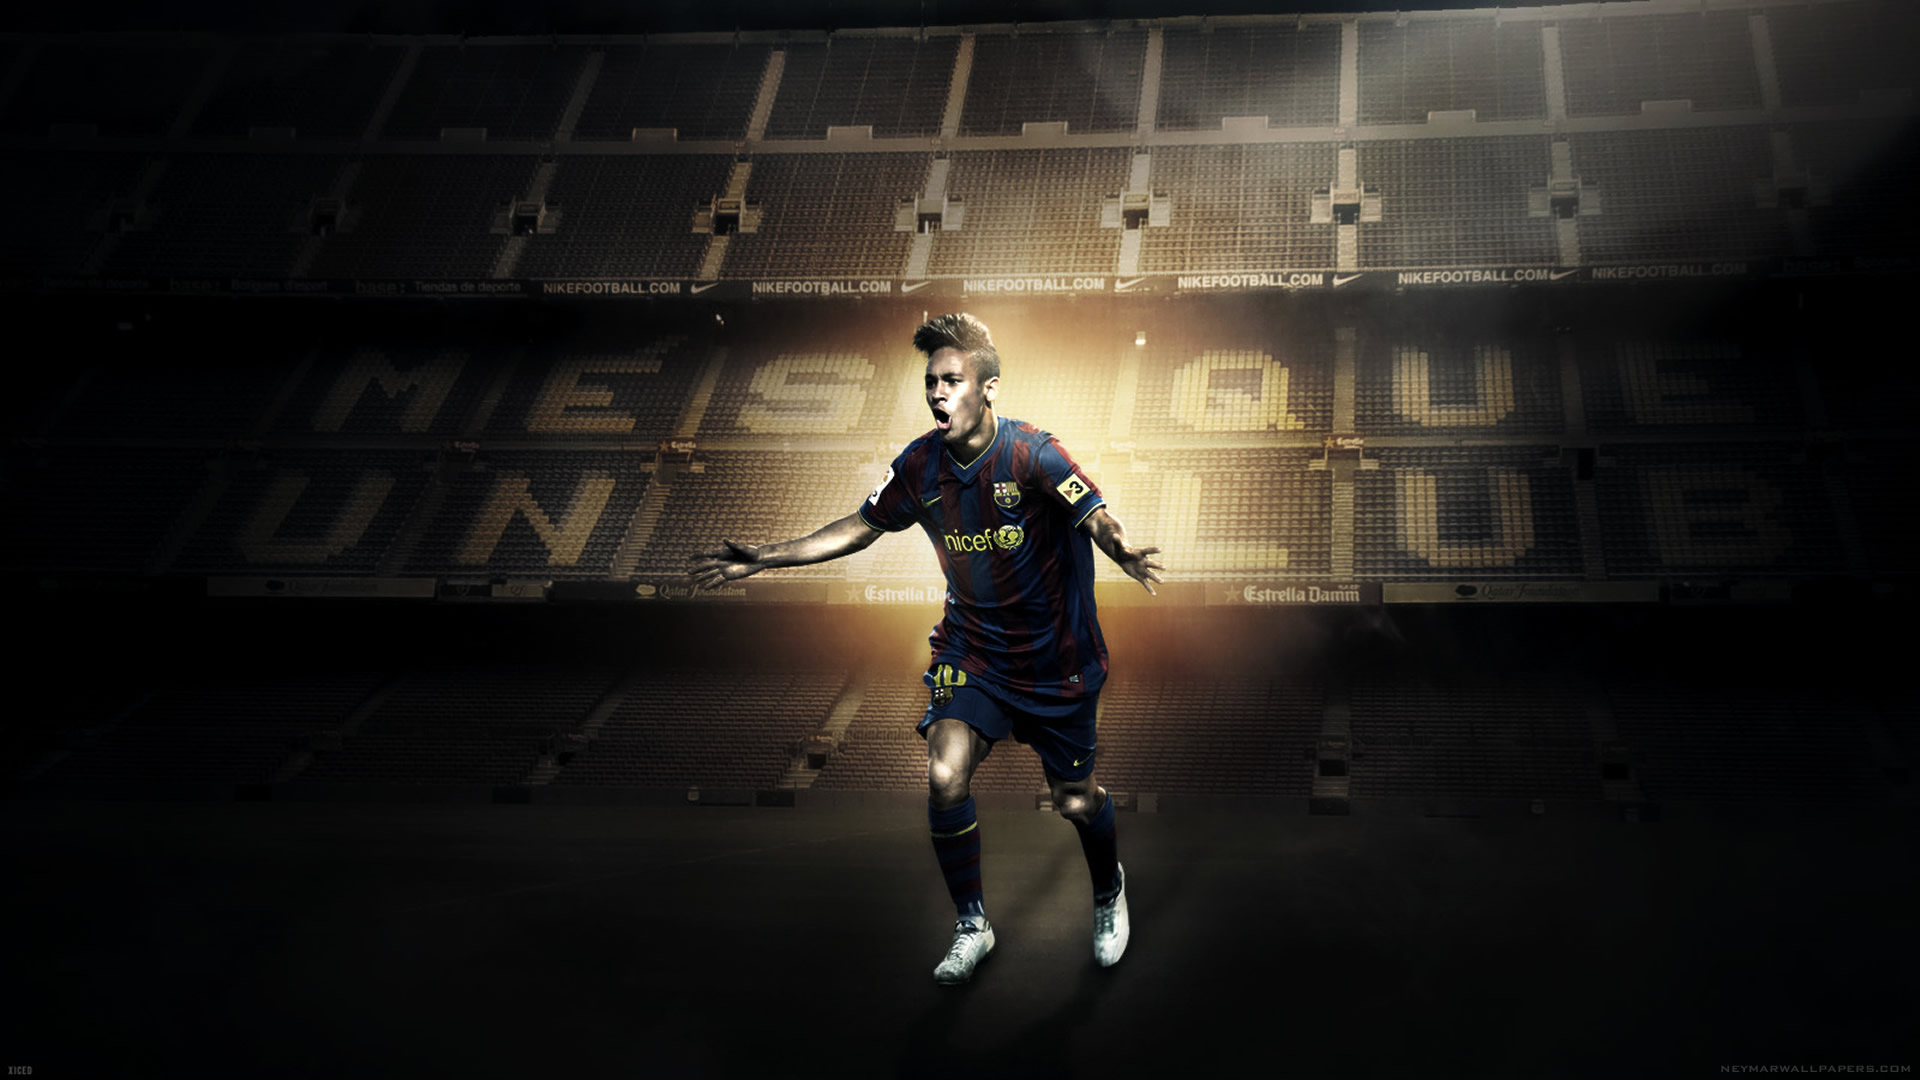 Neymar celebrating wallpaper